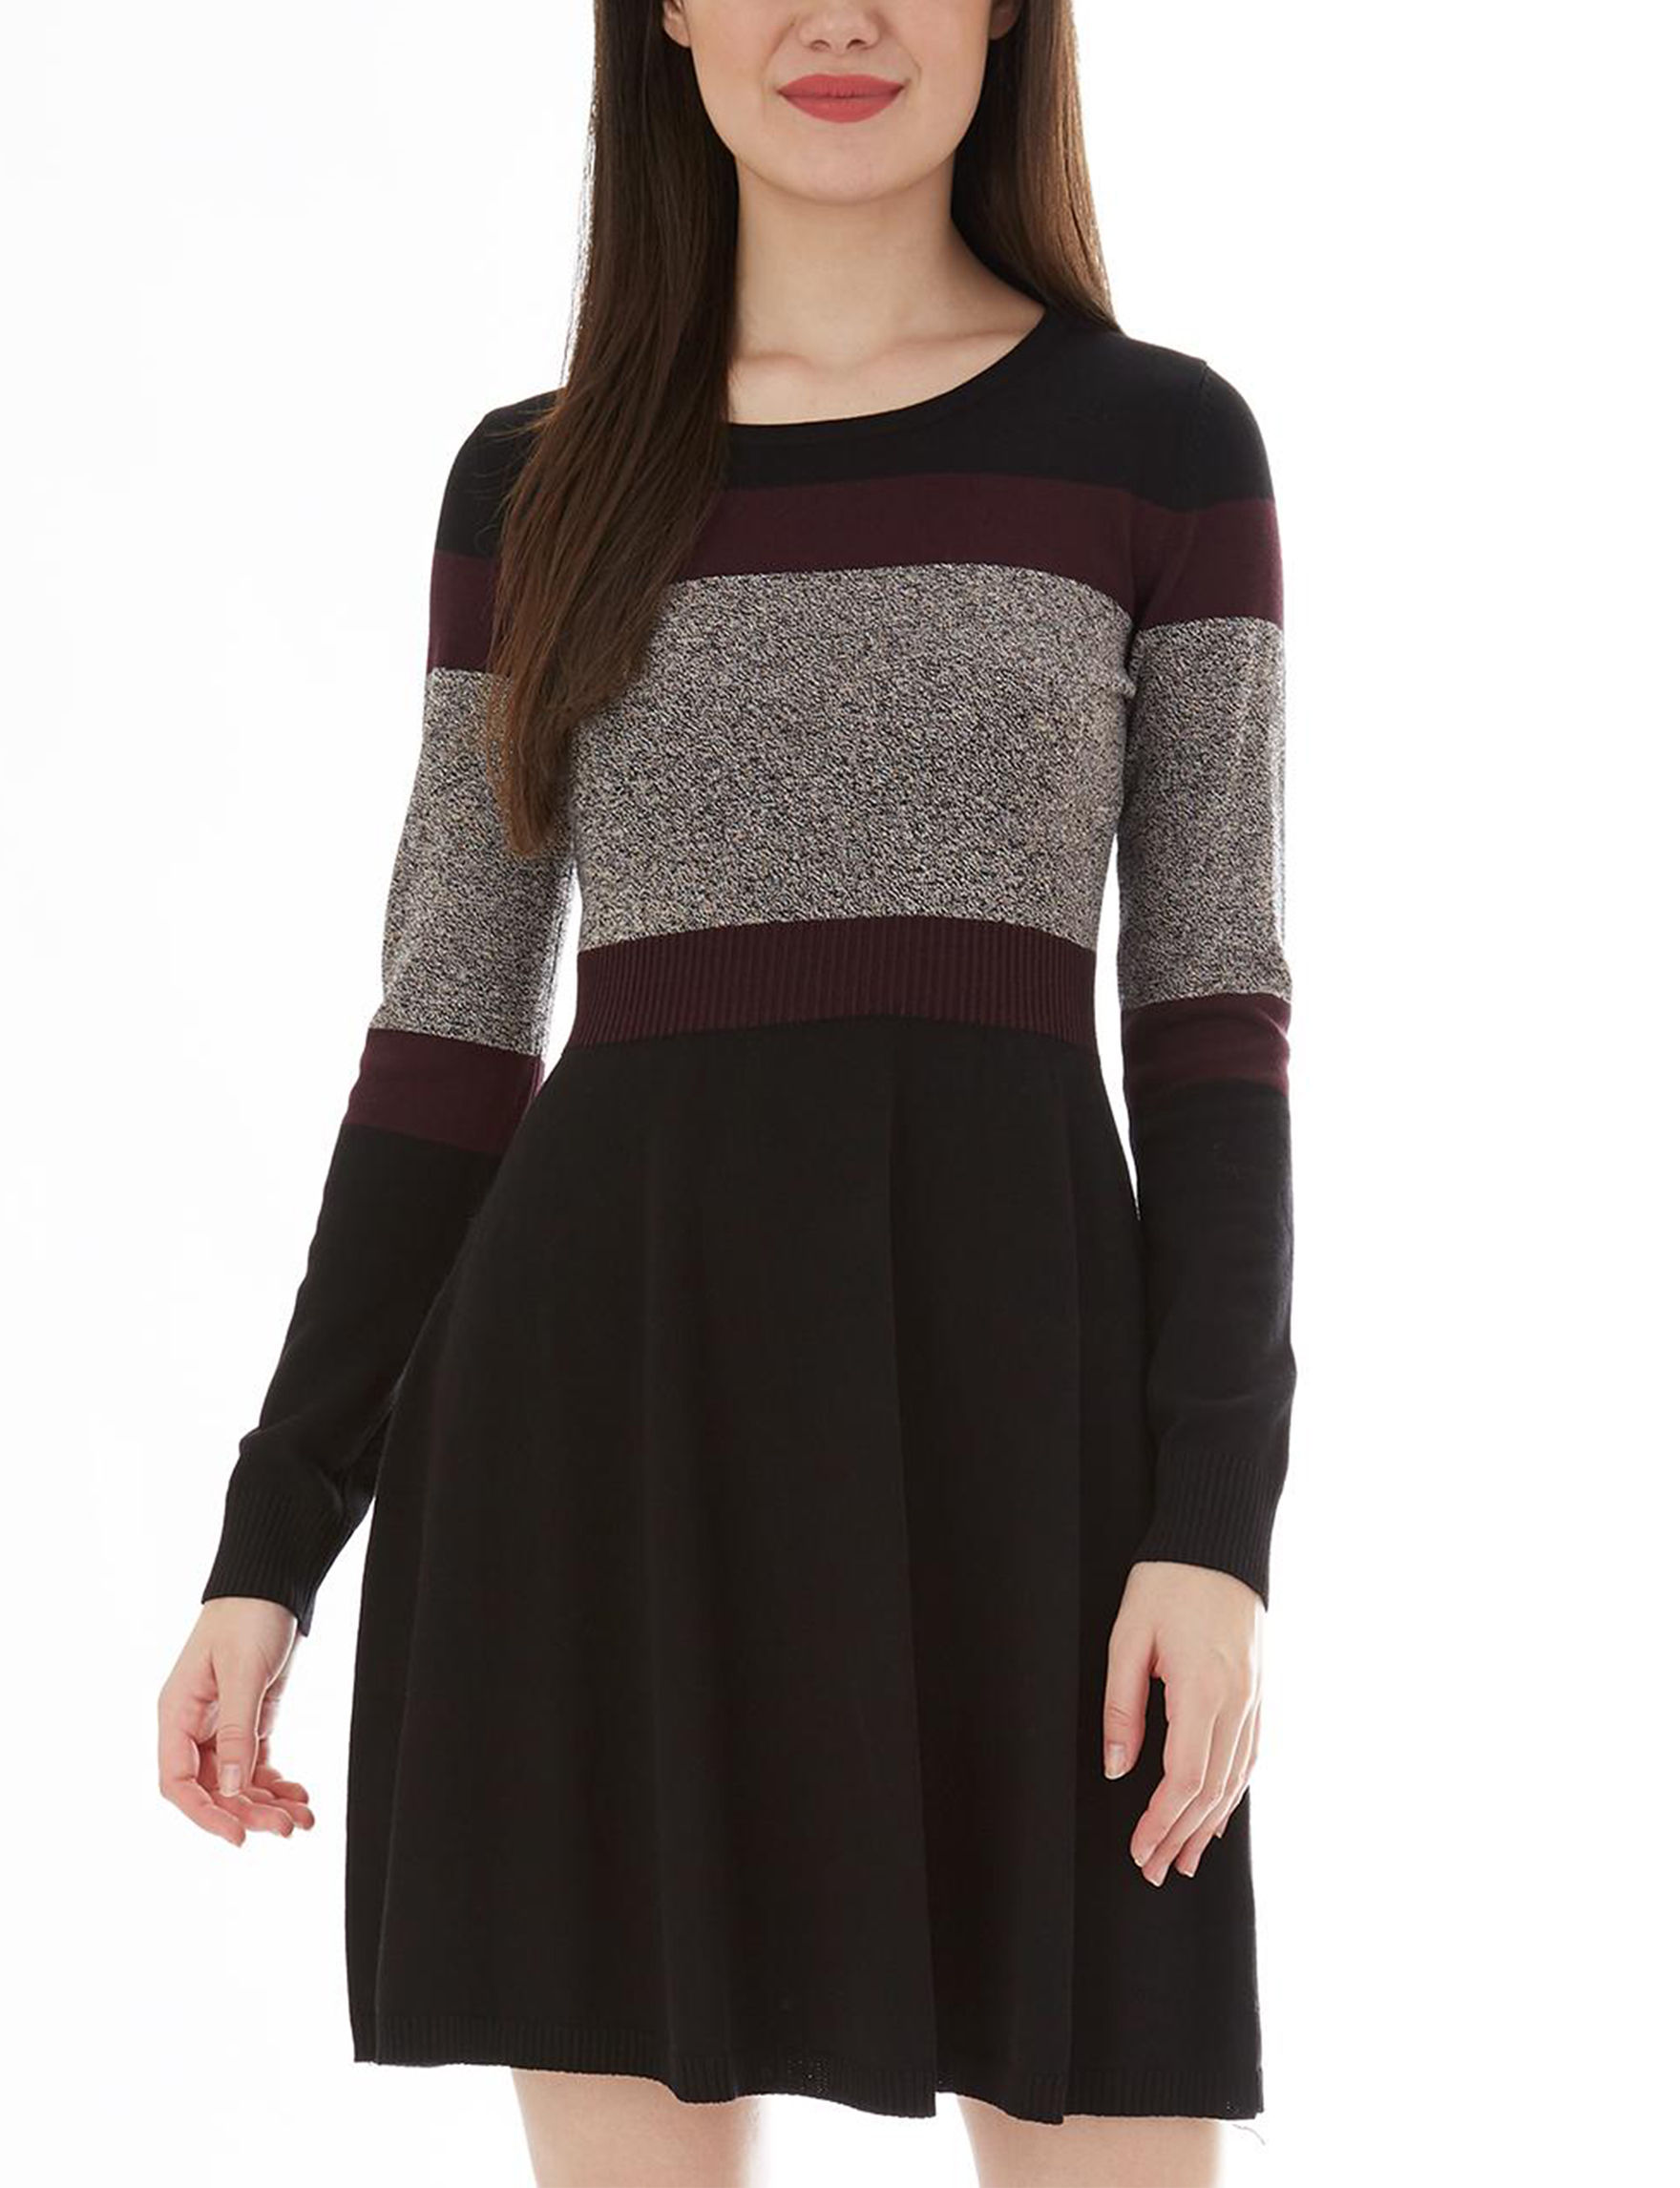 A. Byer Black Everyday & Casual Sweater Dresses